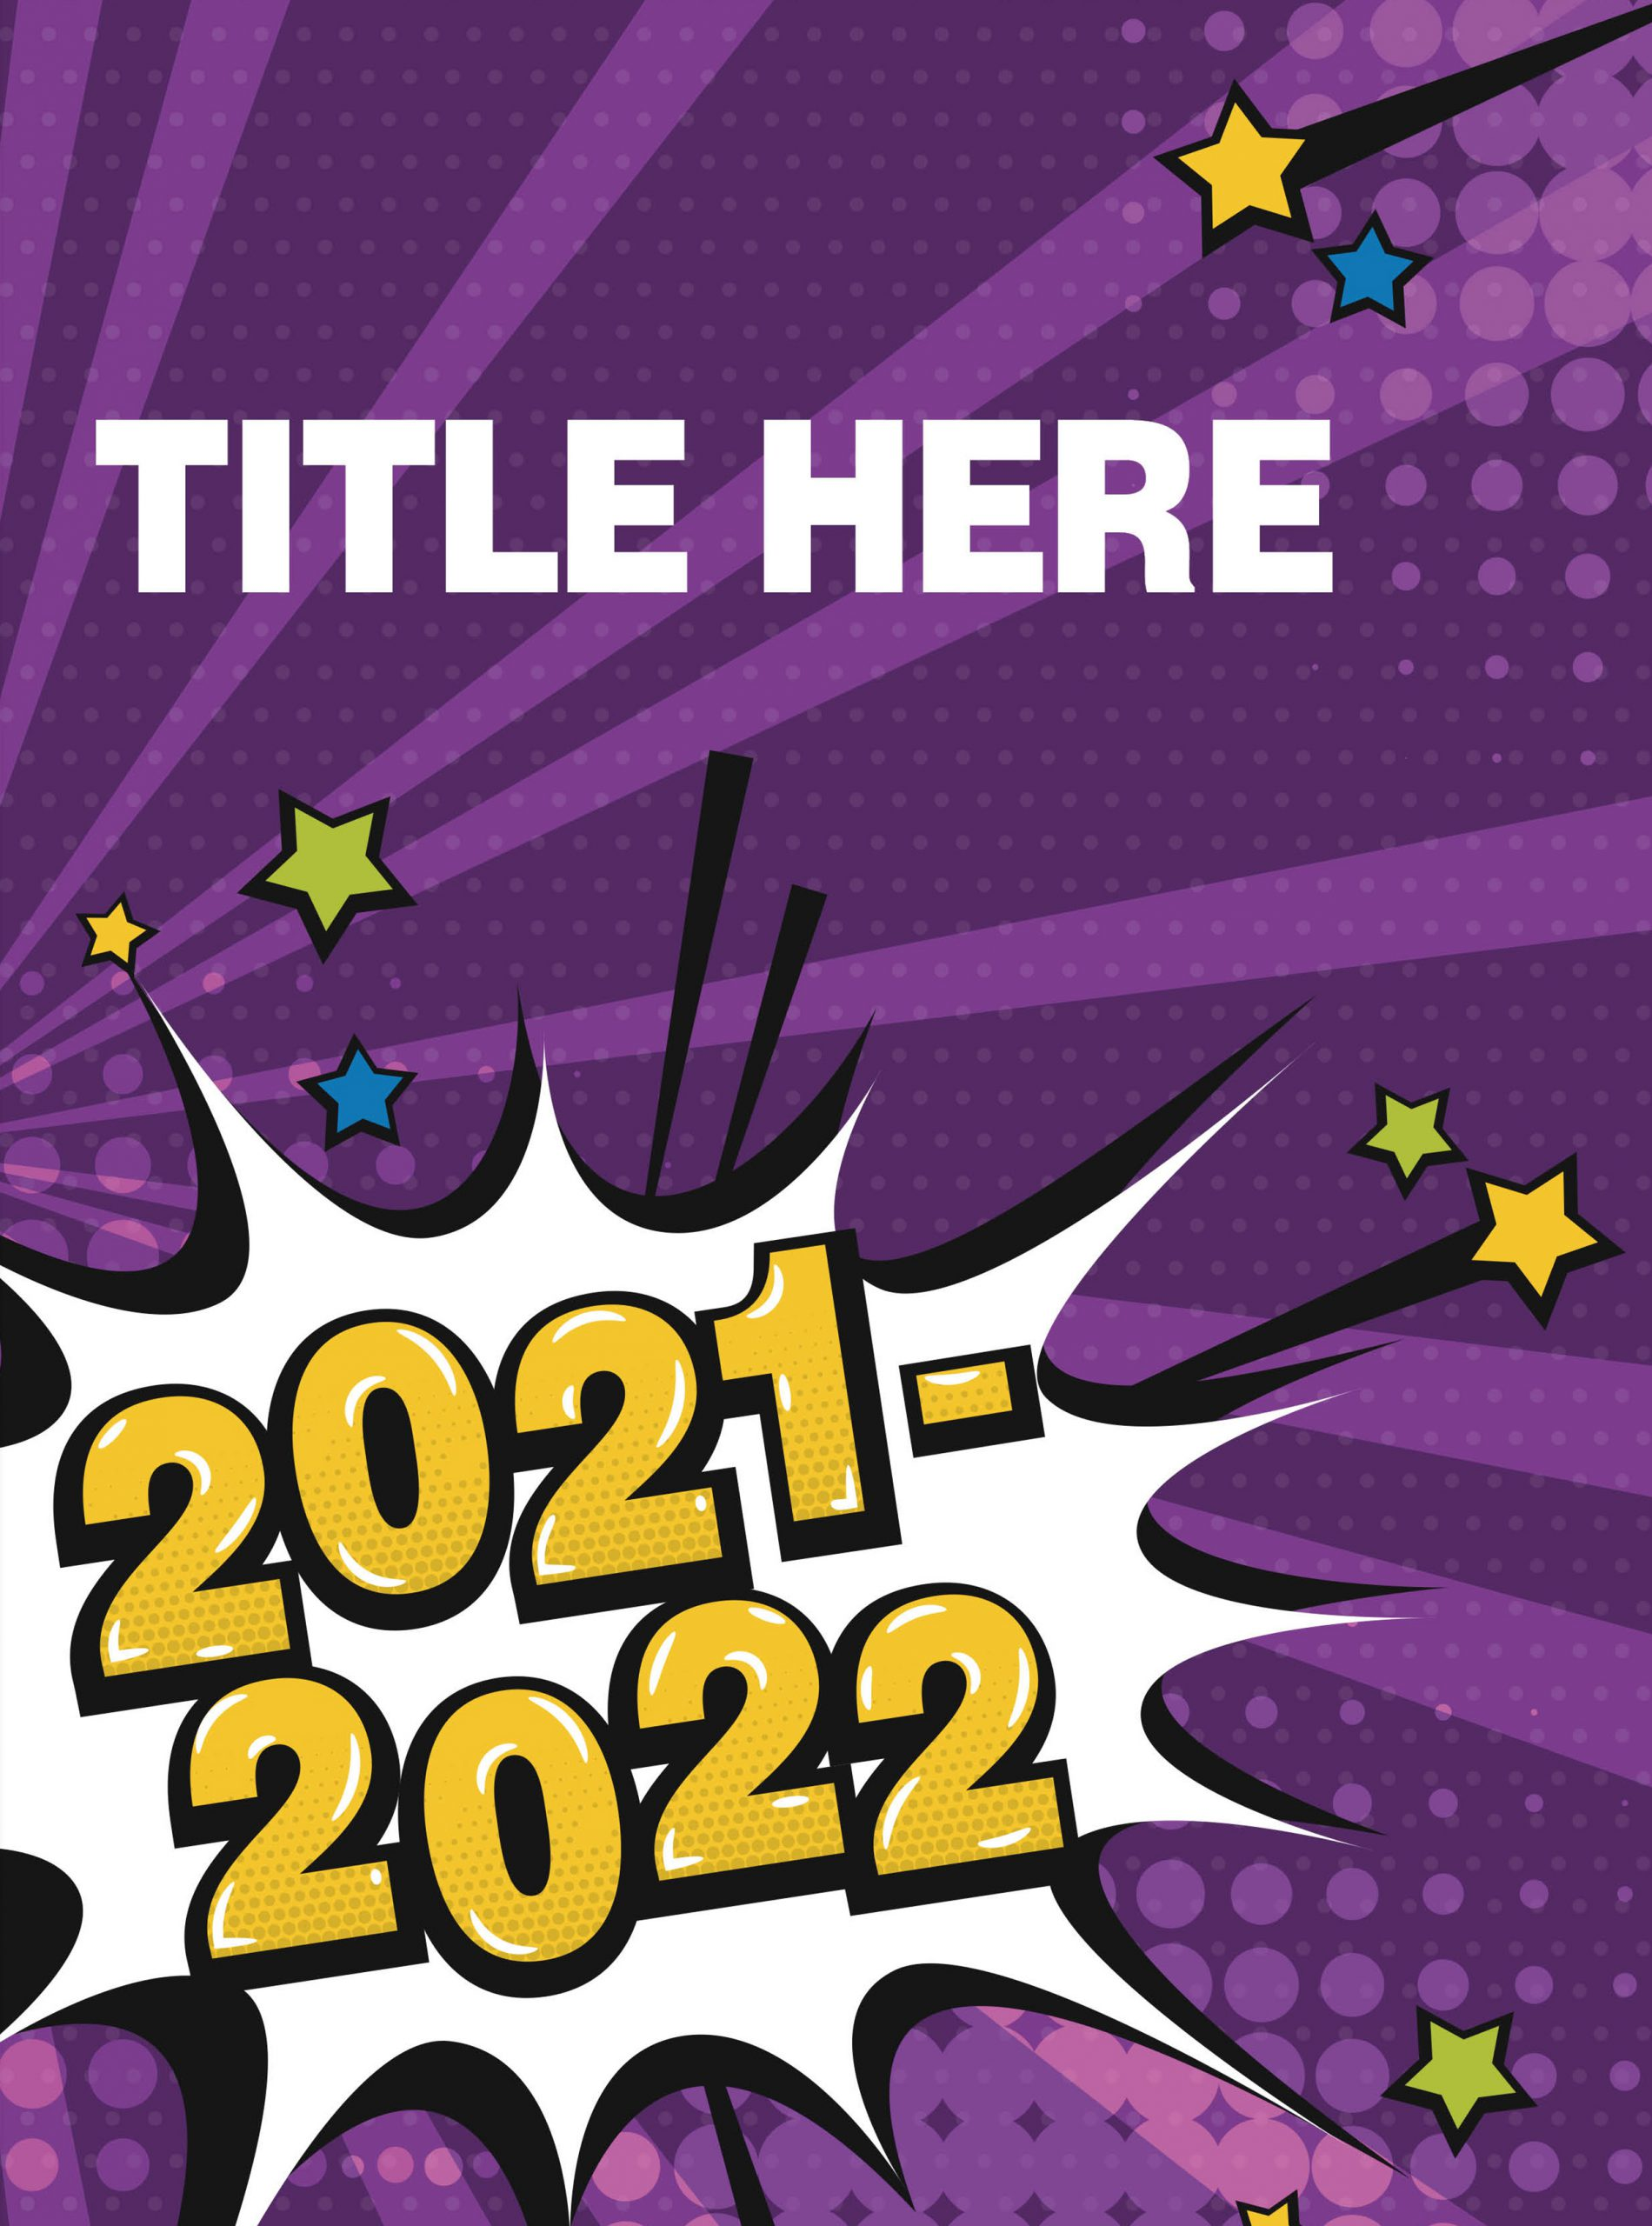 Pastel Arrows Pointing Right With Tan Background, Yearbook Cover 2007